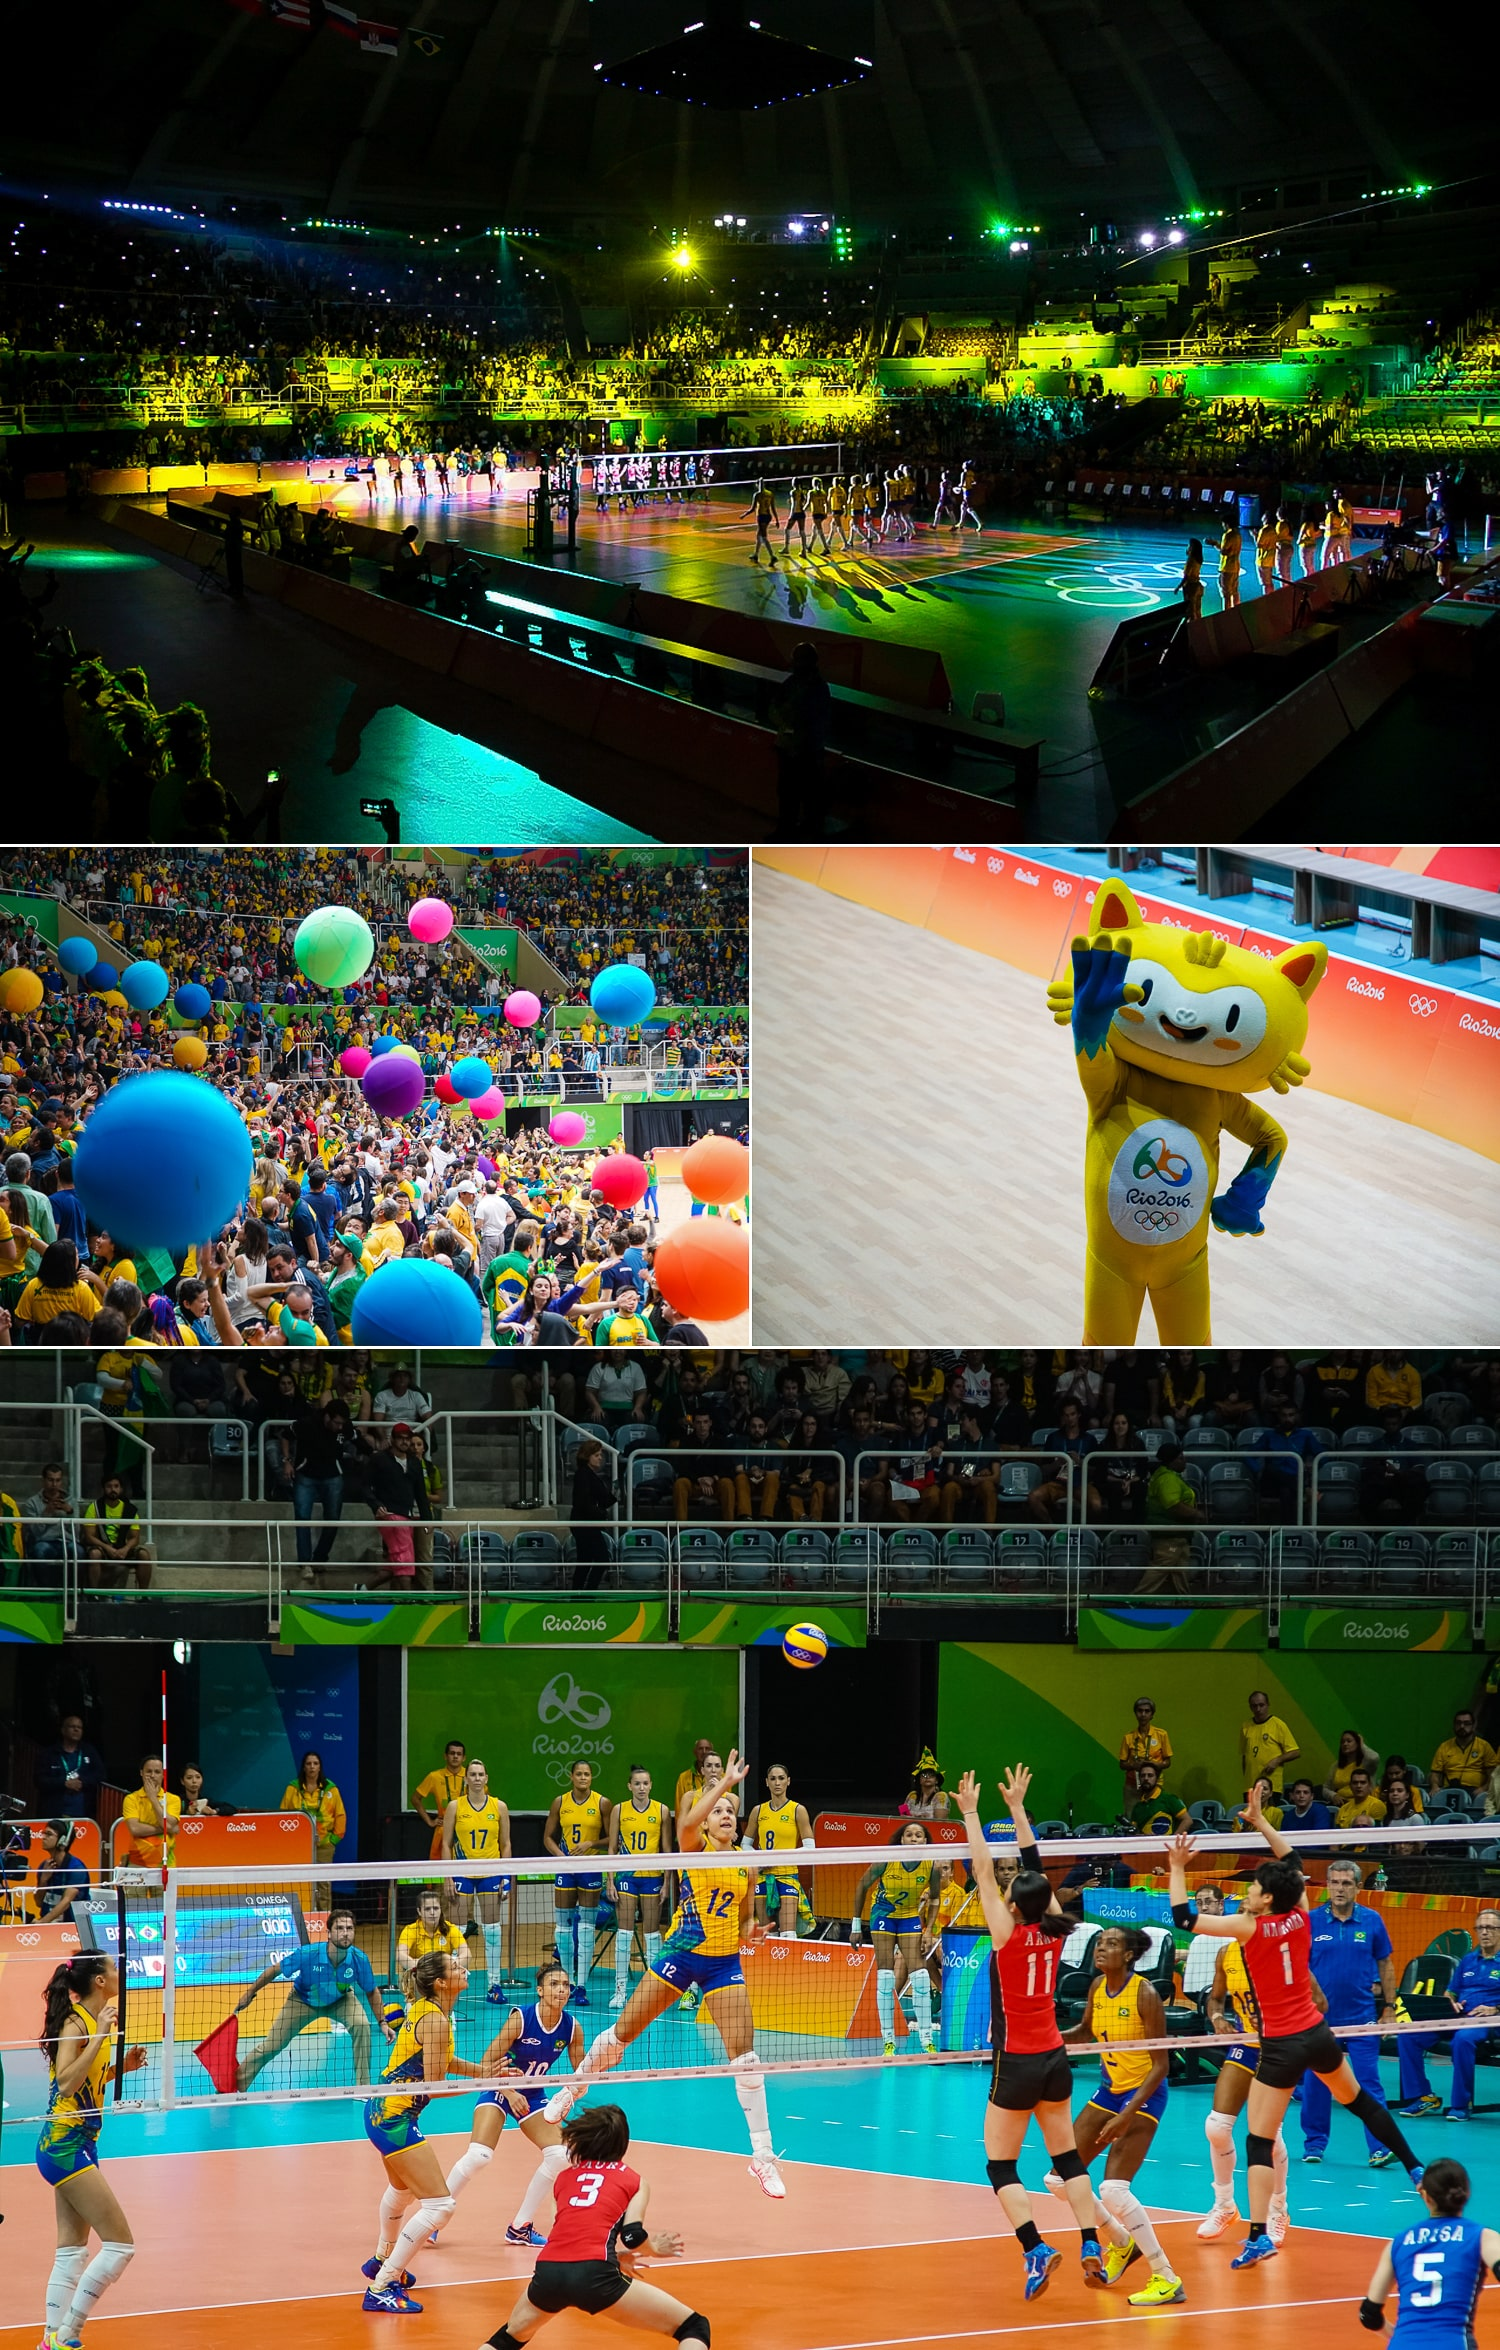 Women's Volleyball in Rio